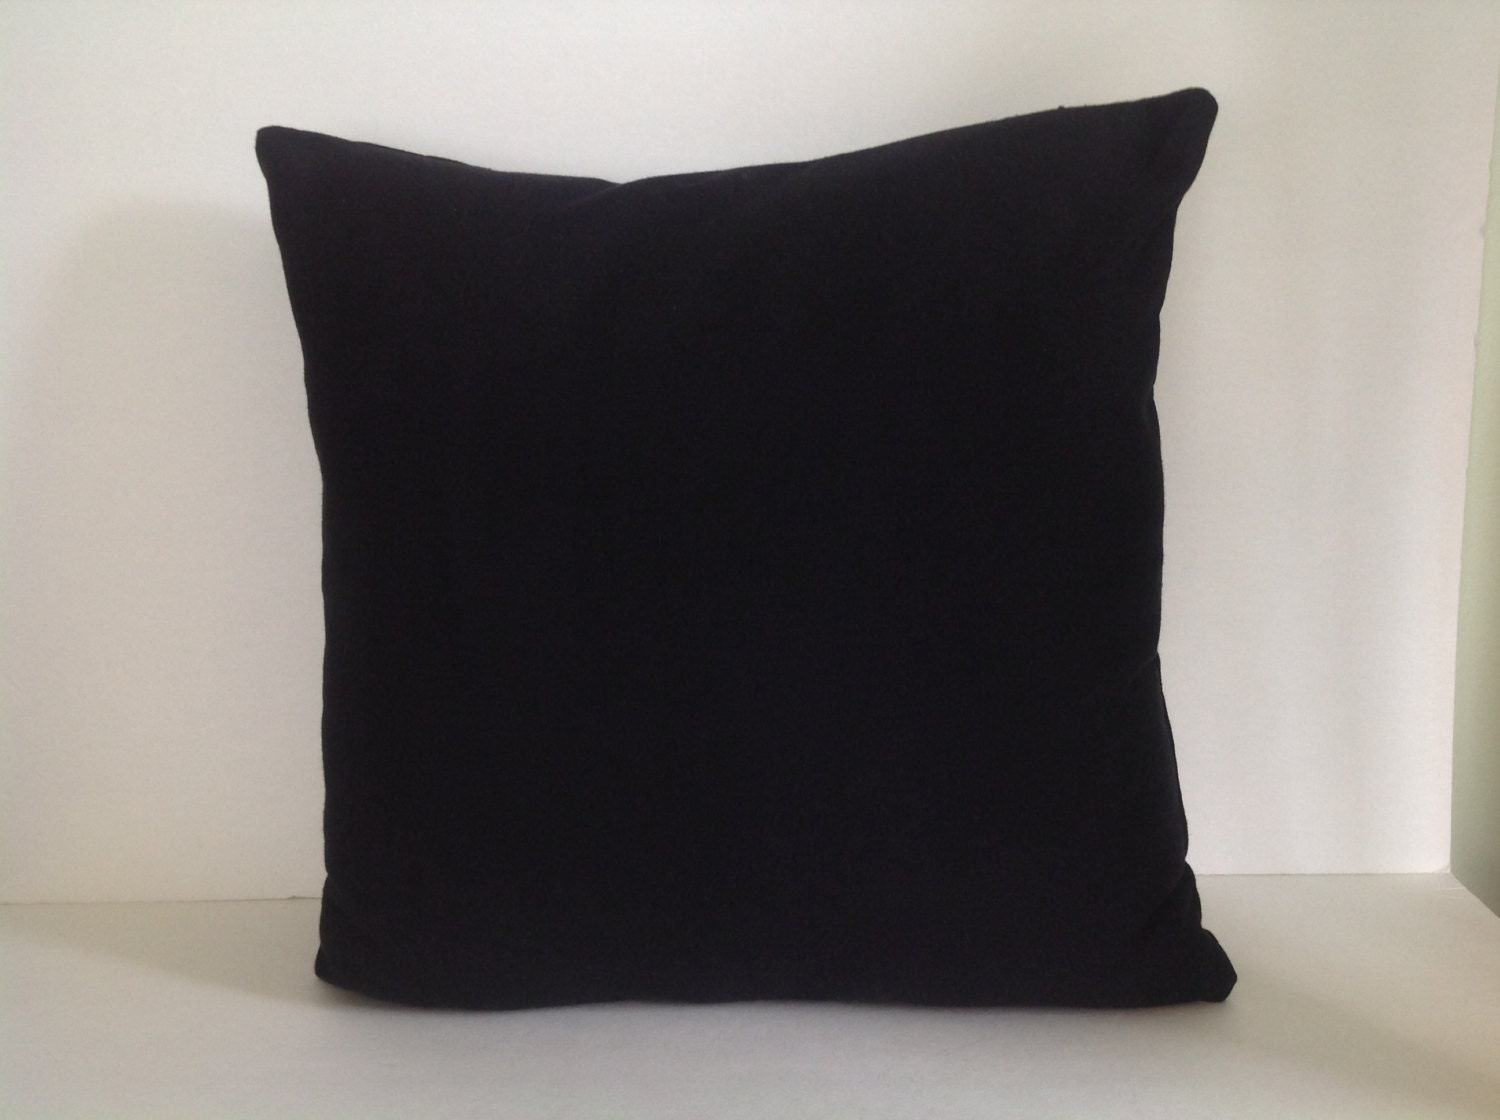 Throw Pillow Blanks : Black canvas pillow cover blank throw pillow cover diy